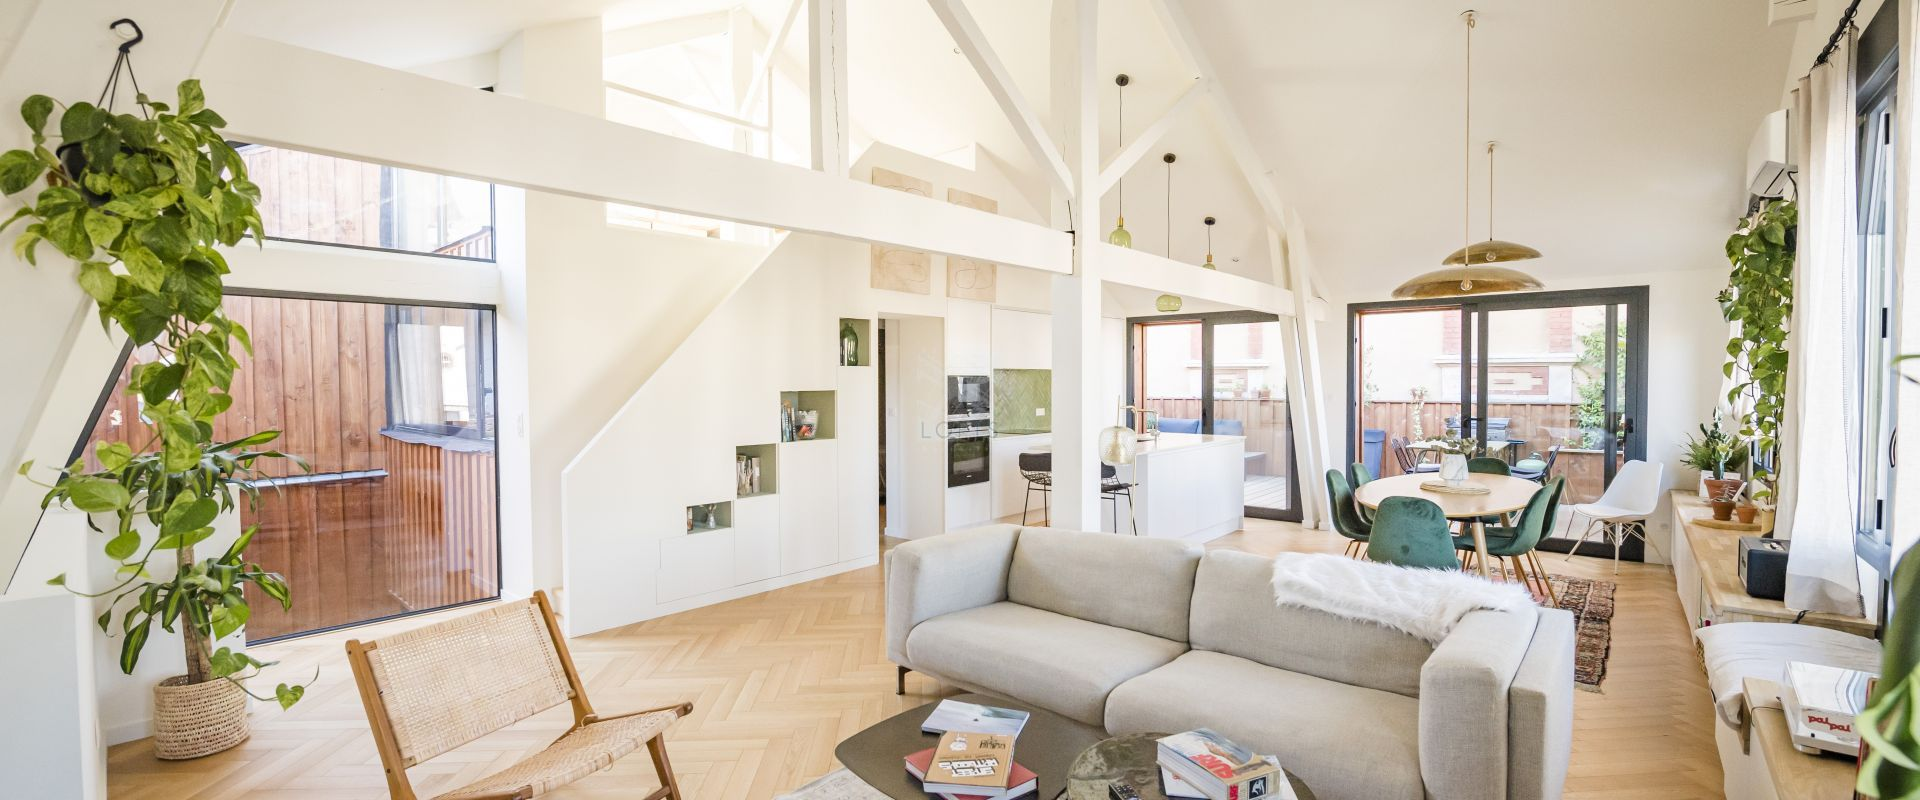 Loft with terrace in Arcachon